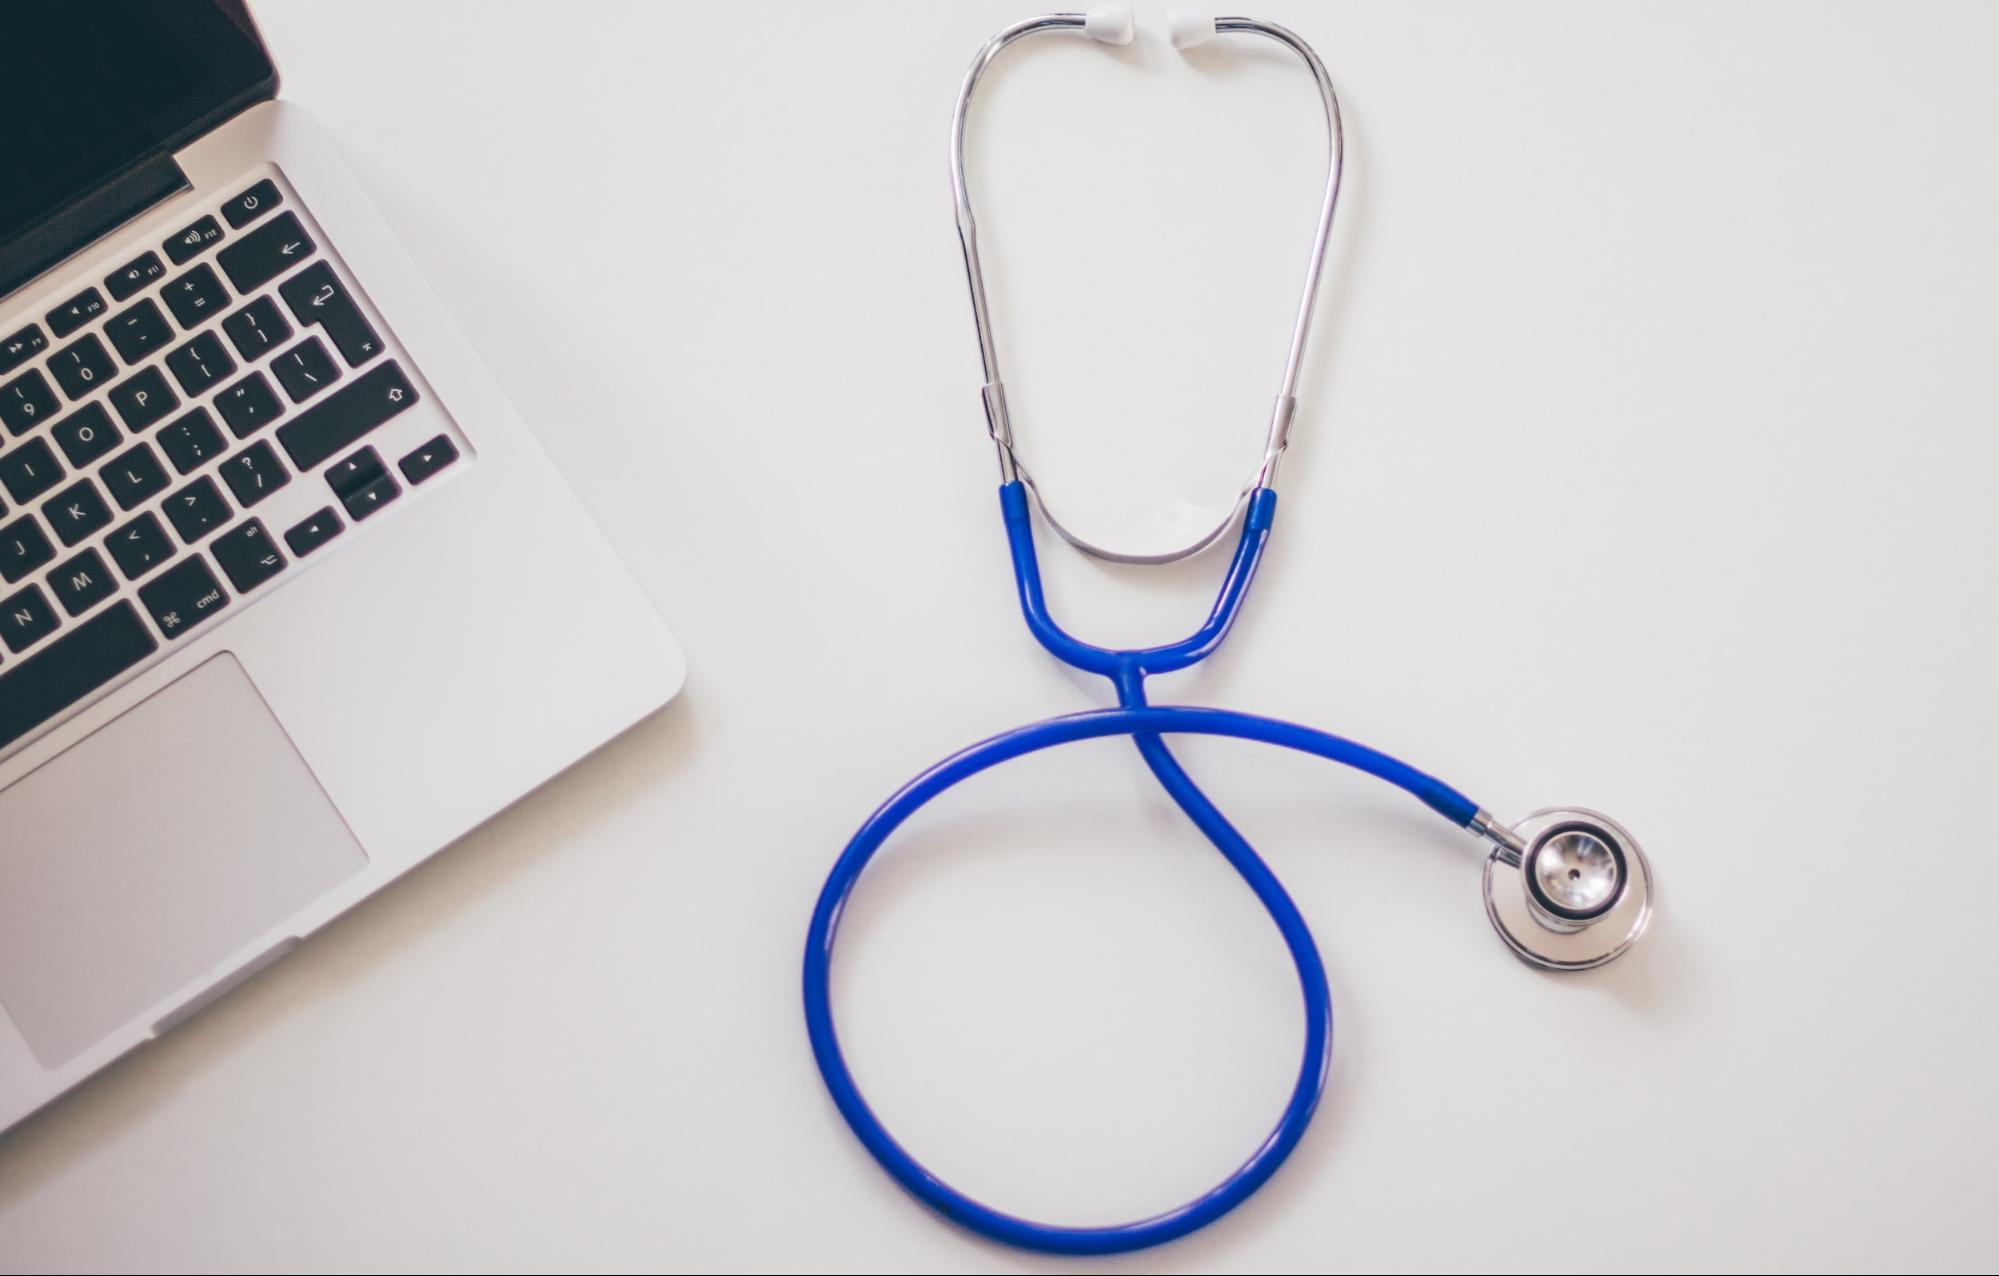 Essential telemedicine equipment for telehealth visits